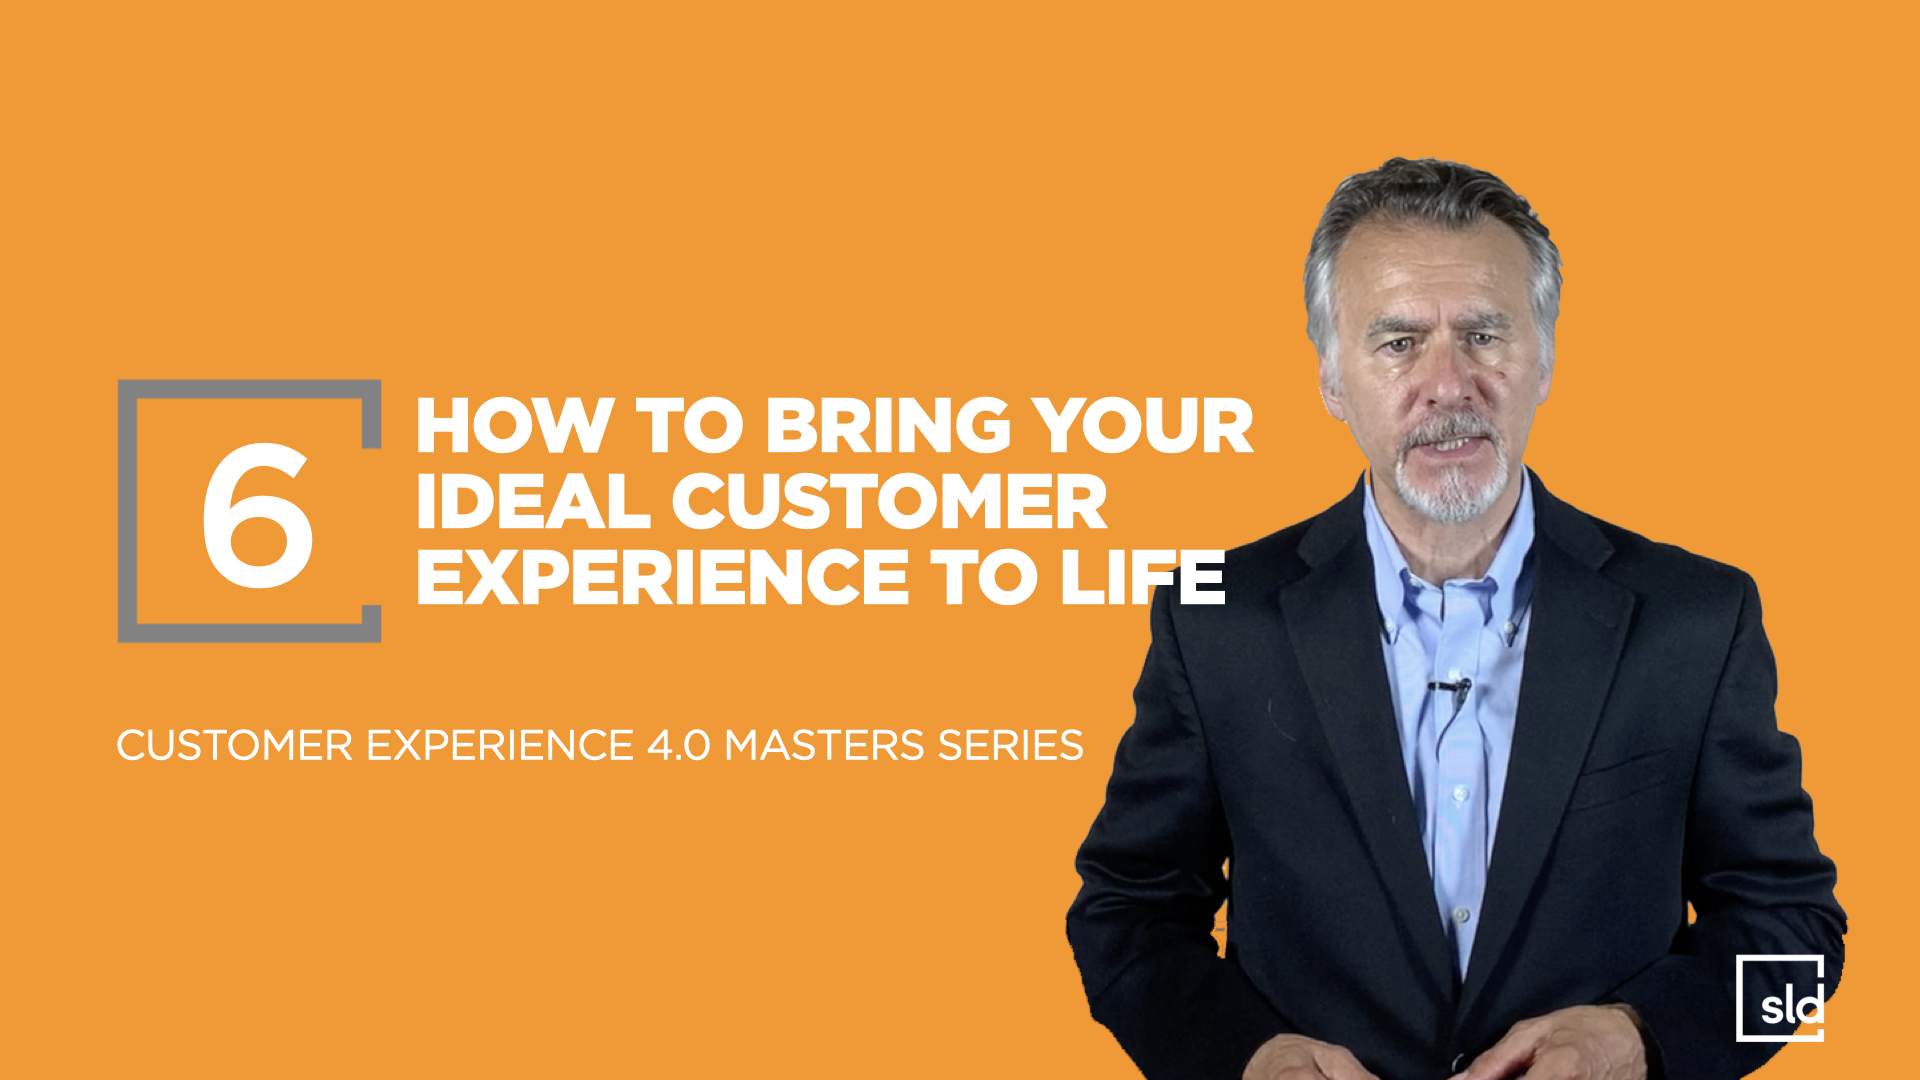 6. How to Bring Your Ideal Customer Experience To Life